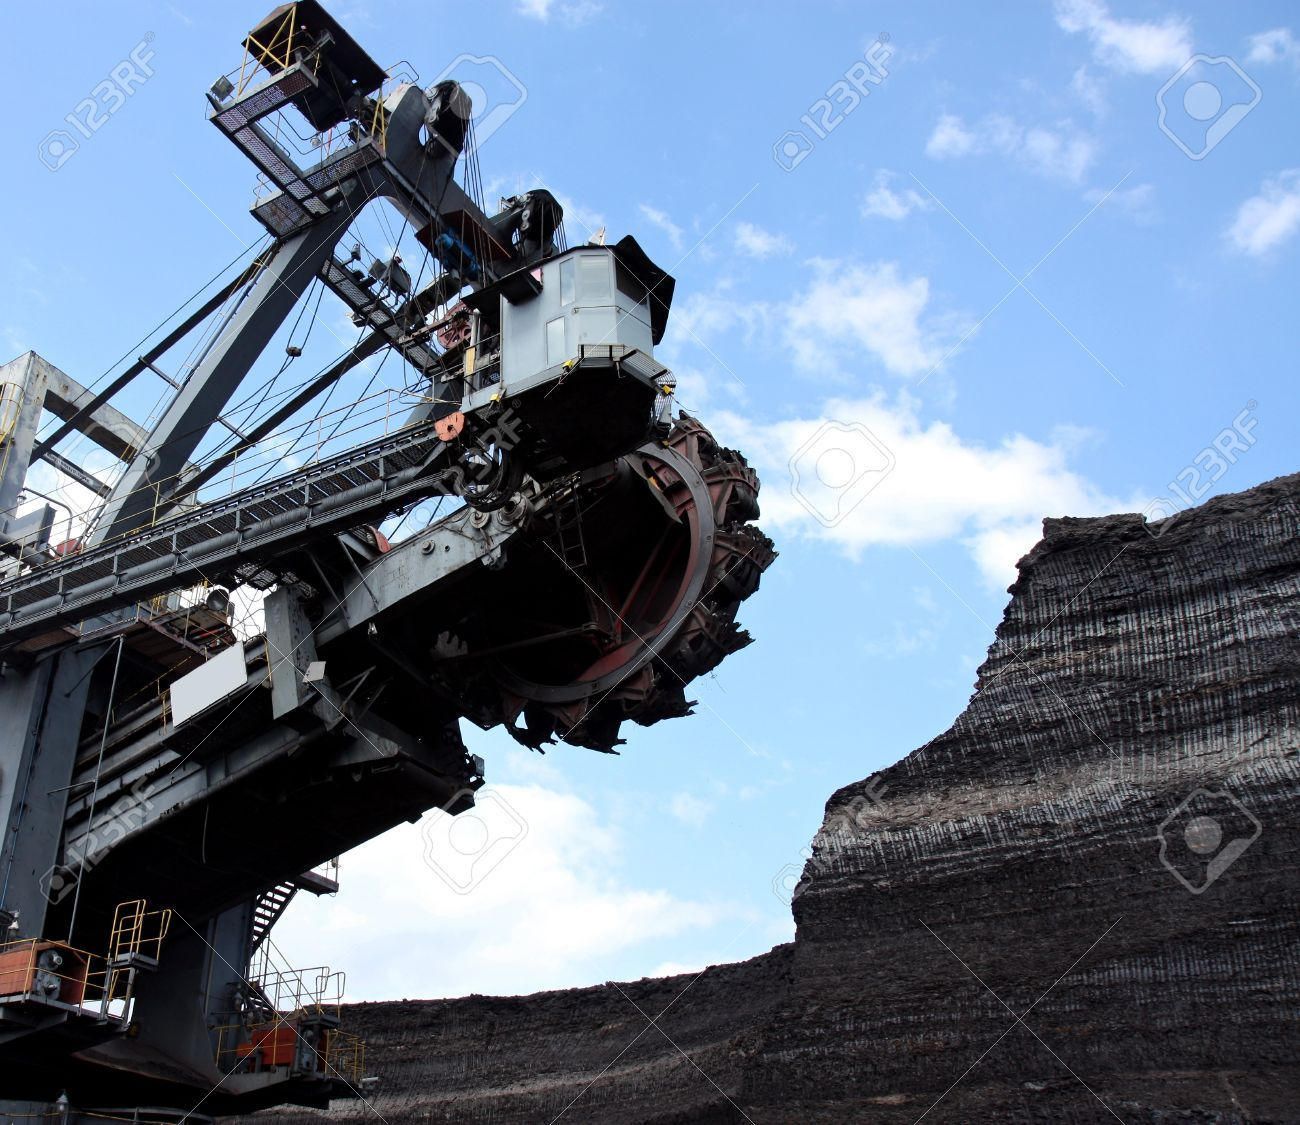 coal mining with big excavator in action Stock Photo - 8054267